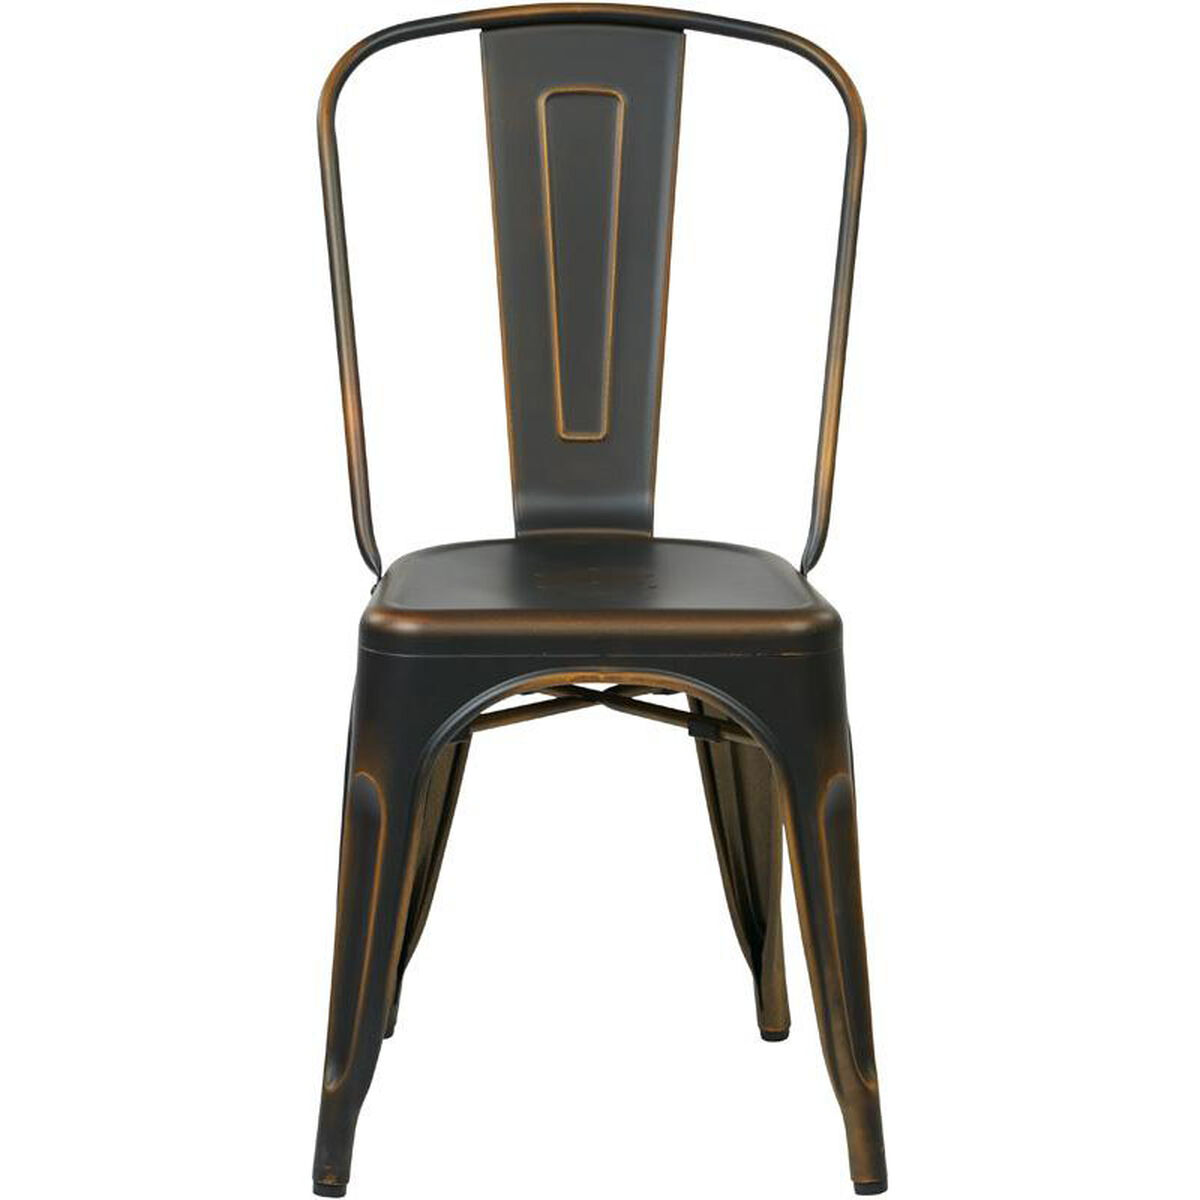 ... Our OSP Designs Bristow Stackable Armless Metal Chair - Set of 4 -  Antique Copper is ... - Set Of 4 Copper Stacking Chair BRW29A4-AC StackChairs4Less.com